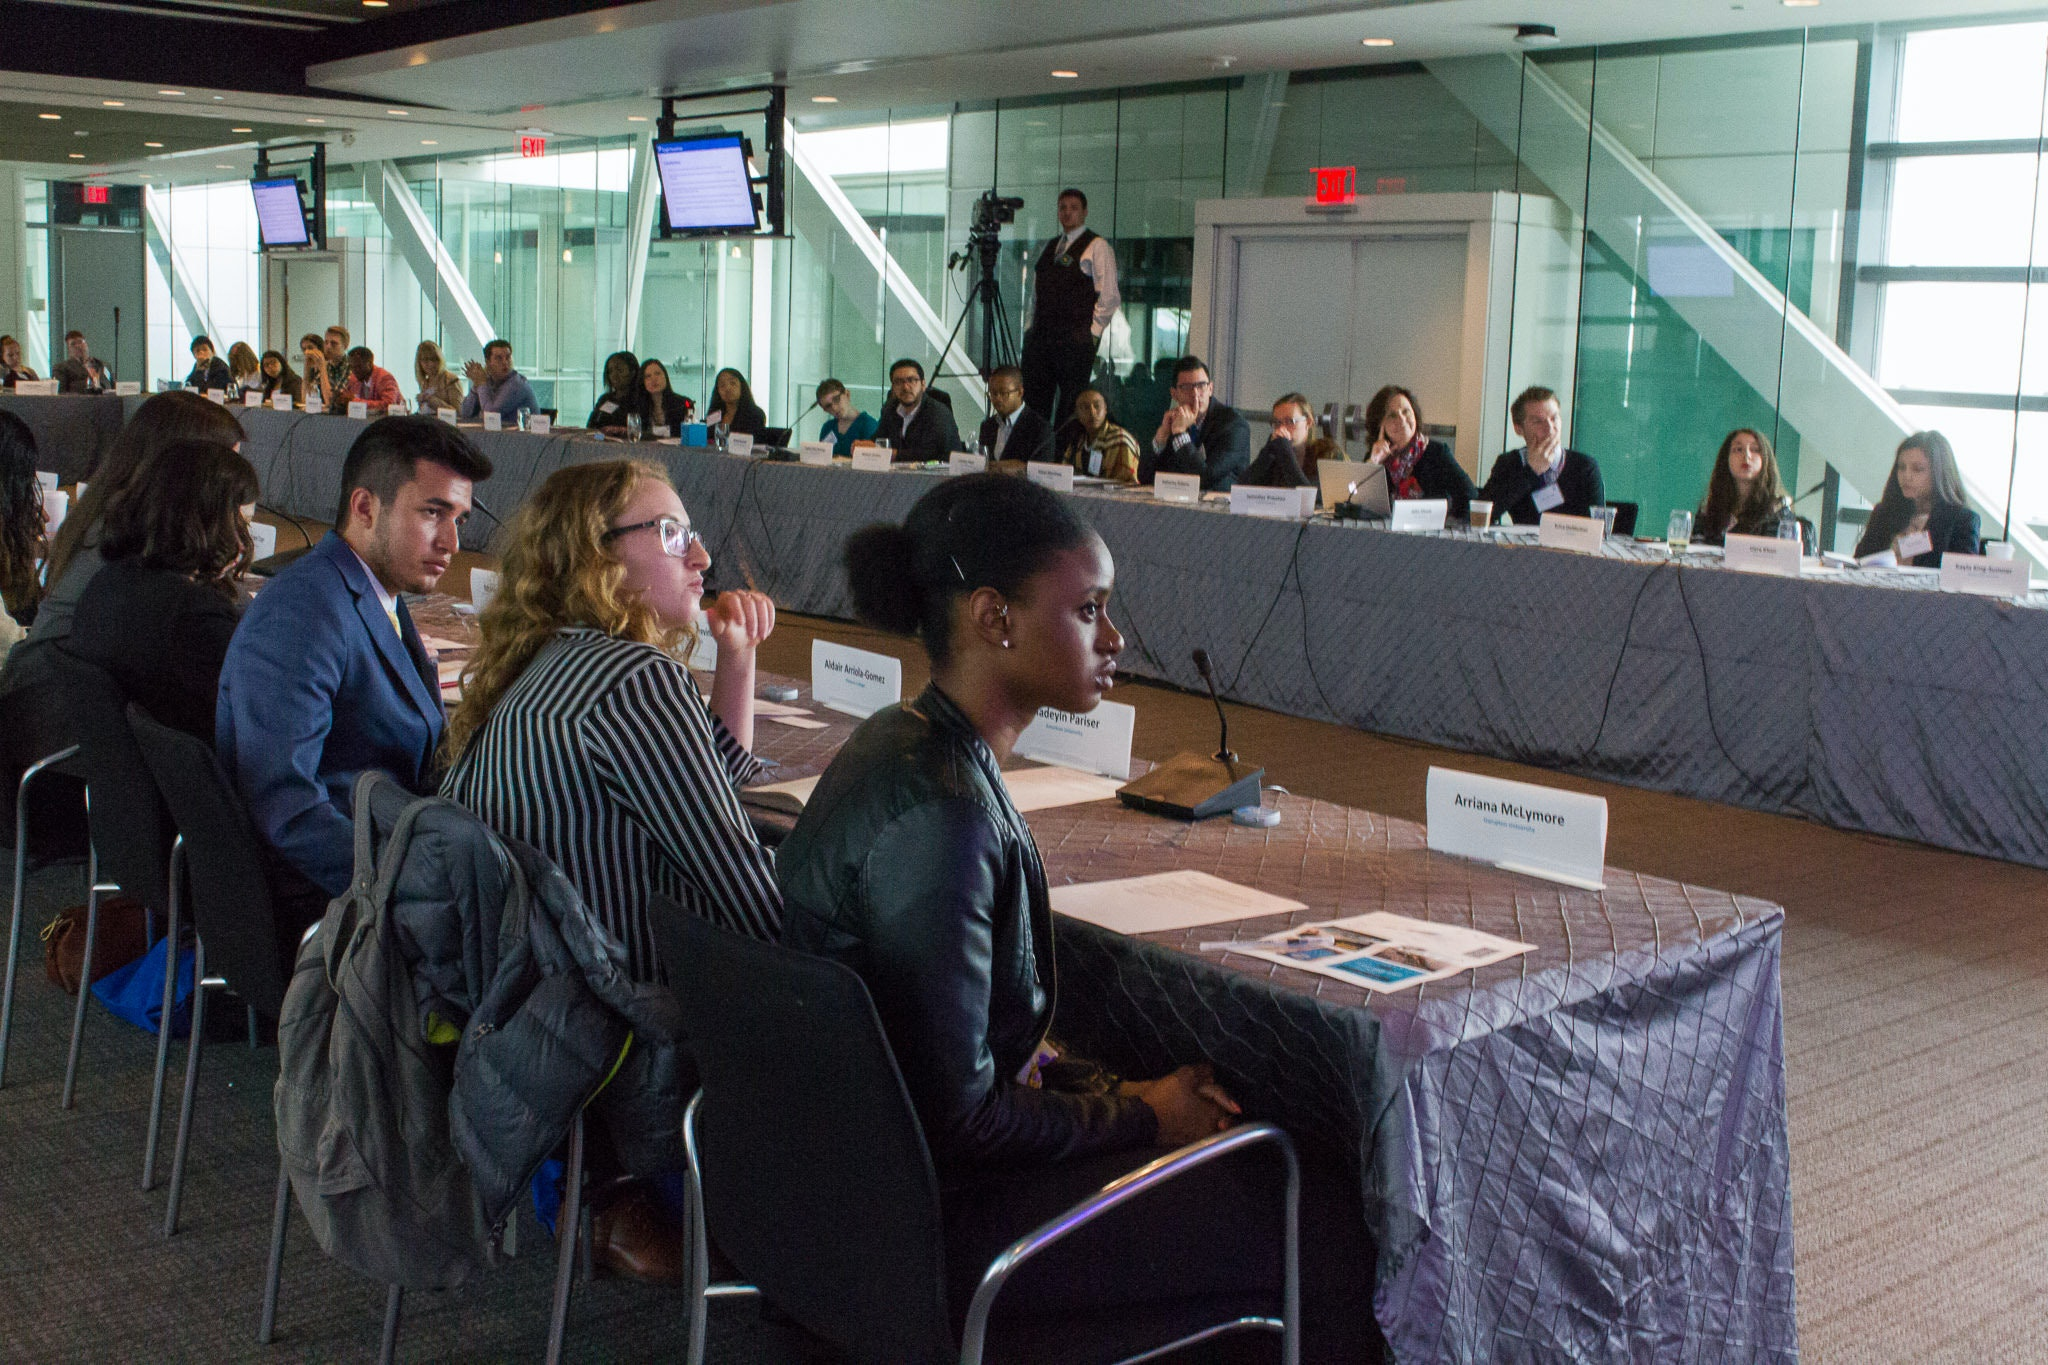 """<p>Students discuss First Amendment rights at the Newseum in Washington, D.C.,on April 2. 2016, during a conference sponsored by the Newseum Institute and Knight Foundation. Photo (cc) by<a href=""""https://flic.kr/p/F3maiD"""">Mark Schierbecker</a>on Flickr.</p>"""